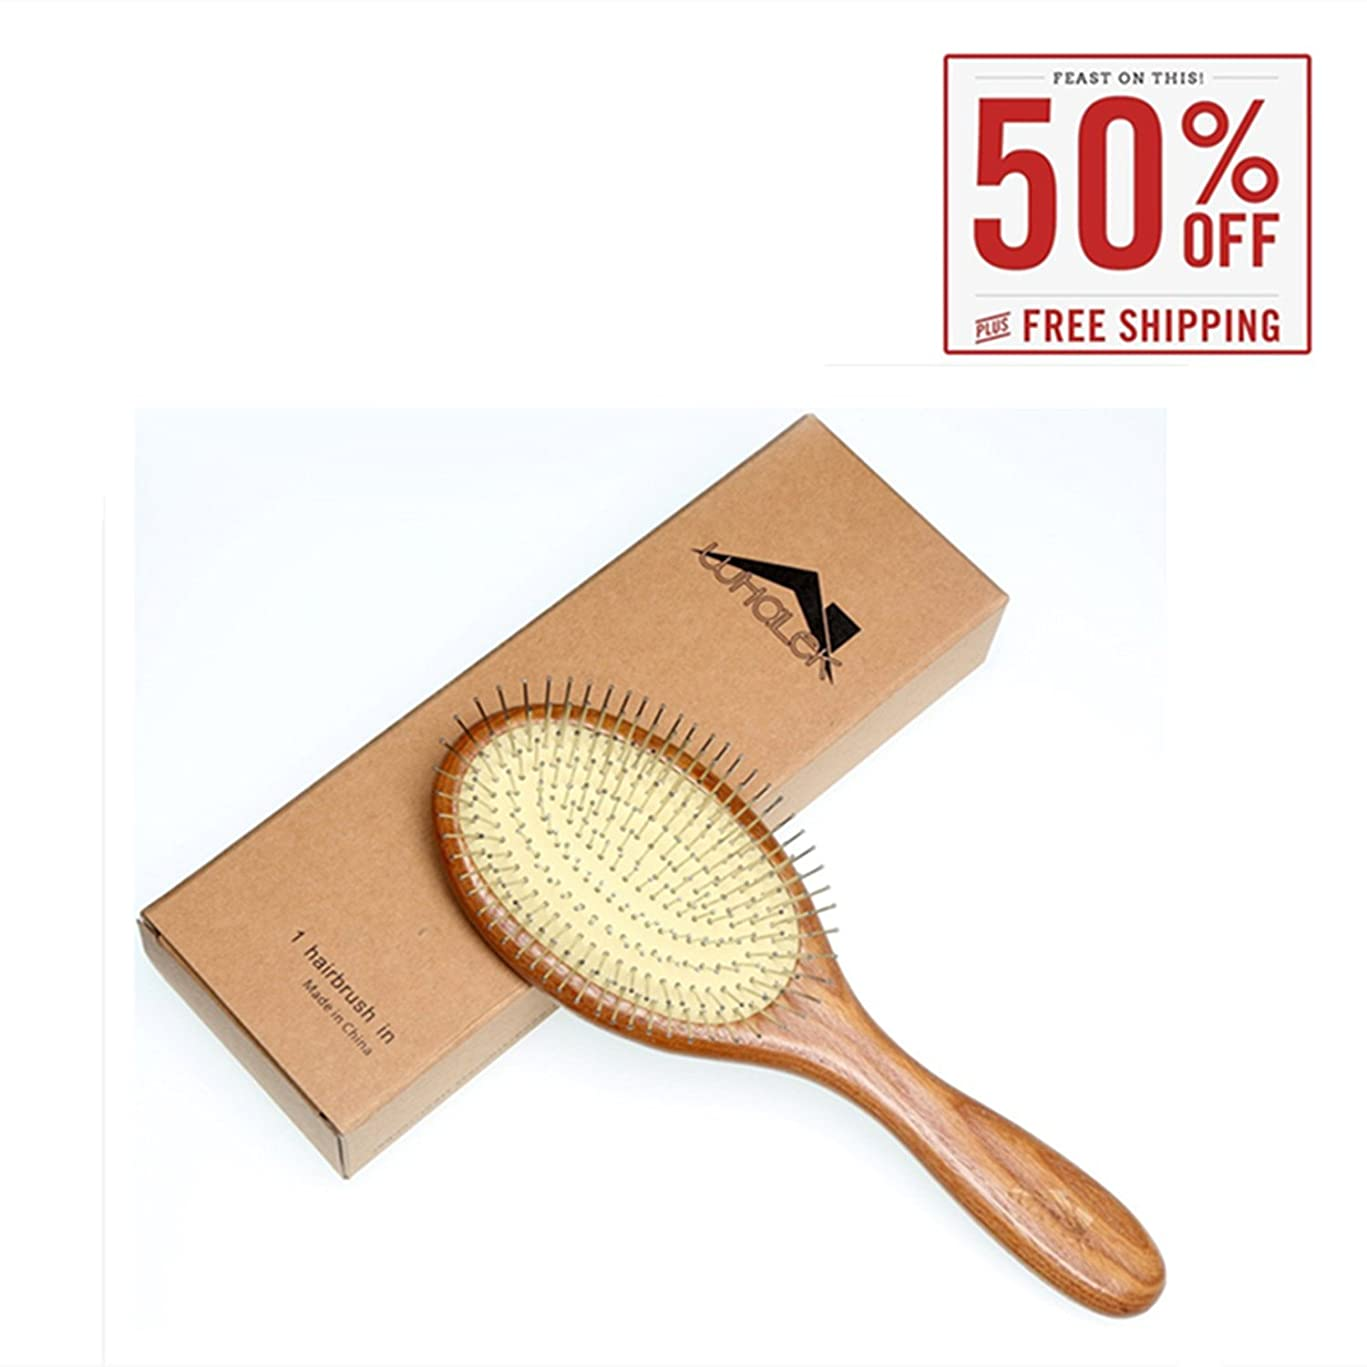 Wooden Hair Brush Comb with Airbag Stainless Pin, Improve Hair Growth Scalp Massage Comb for Women Men and All Types of Hair (9.84